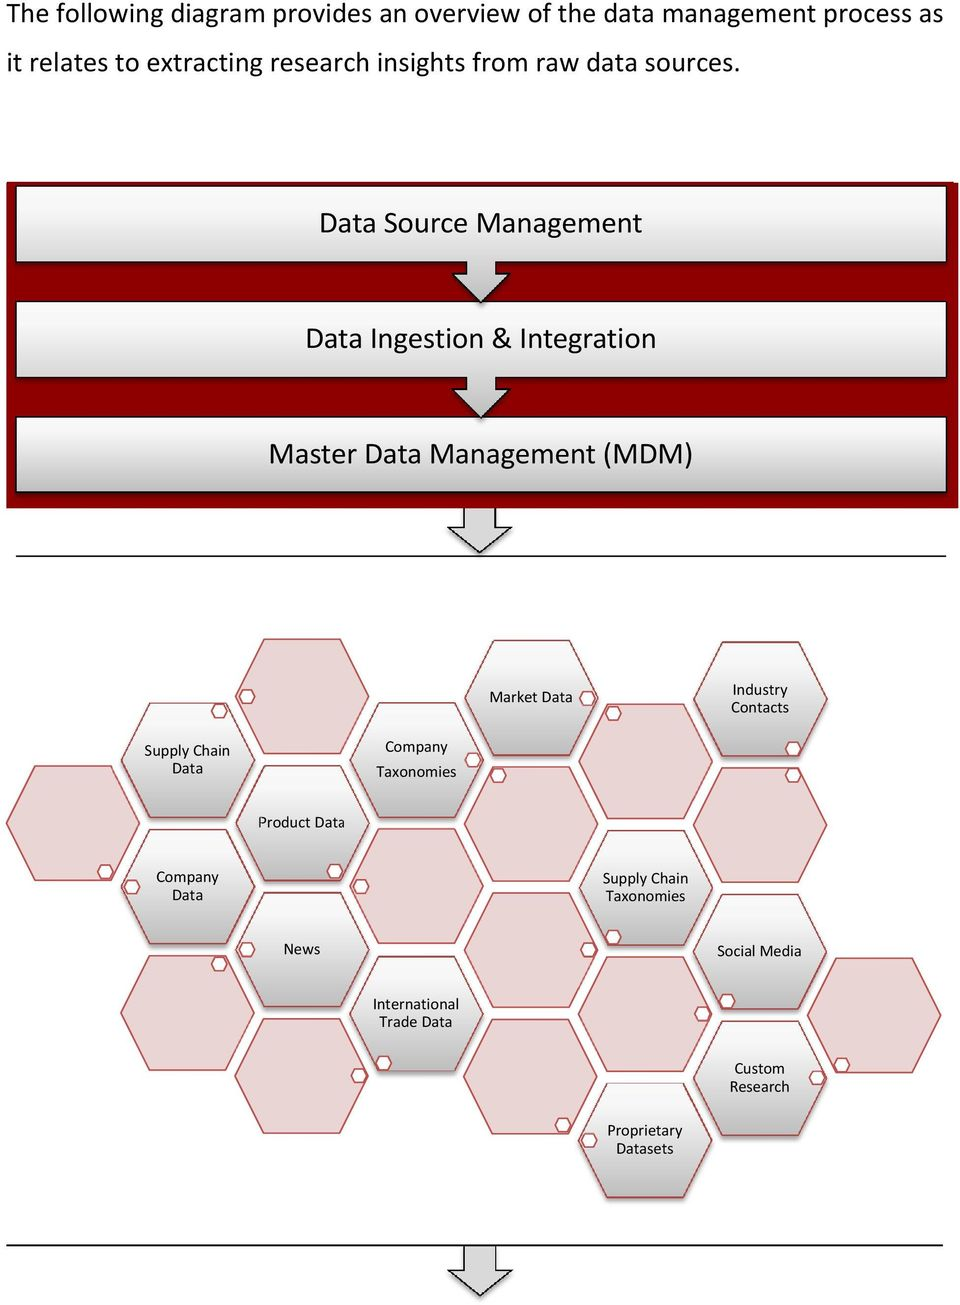 Data Source Management Data Ingestion & Integration Master Data Management (MDM) Market Data Industry